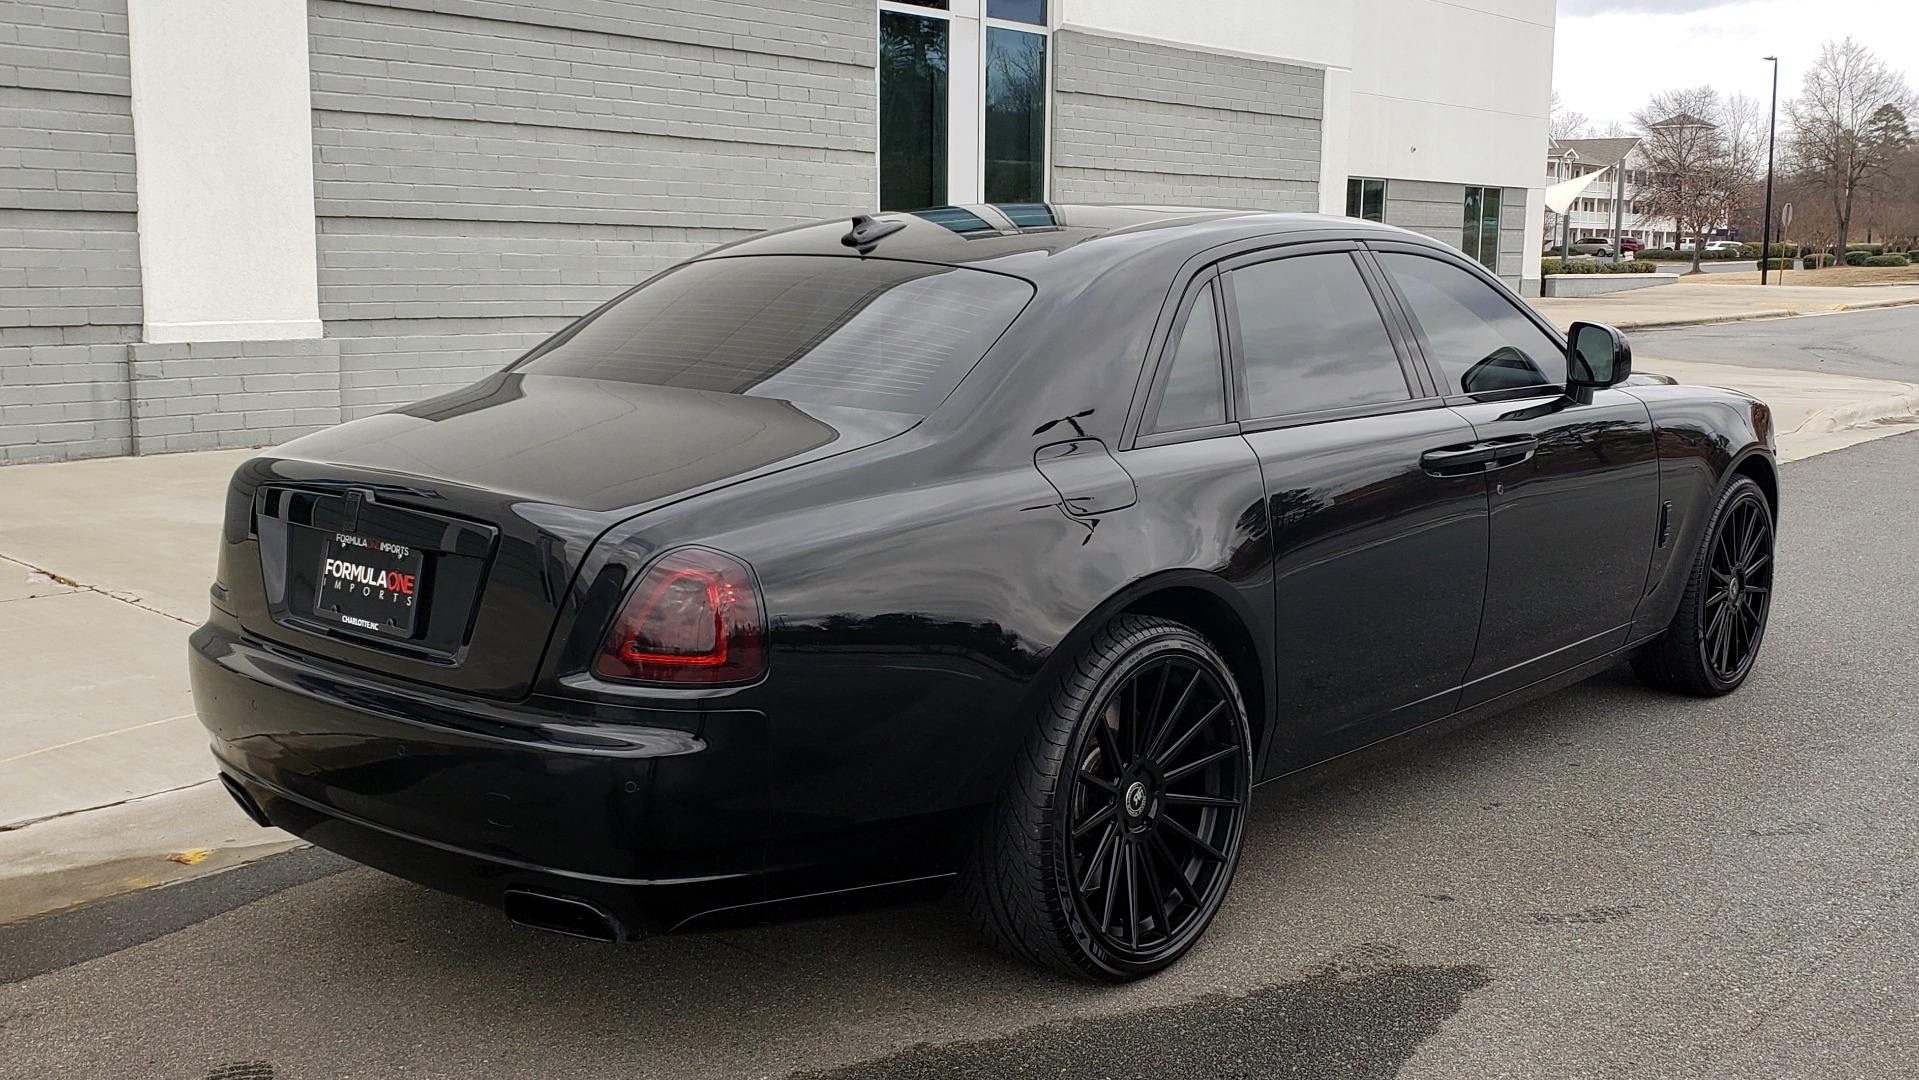 Used 2010 Rolls-Royce GHOST 6.6L TURBO V12 (563HP) / NAV / SUNROOF / SUICIDE DOORS for sale $89,000 at Formula Imports in Charlotte NC 28227 7